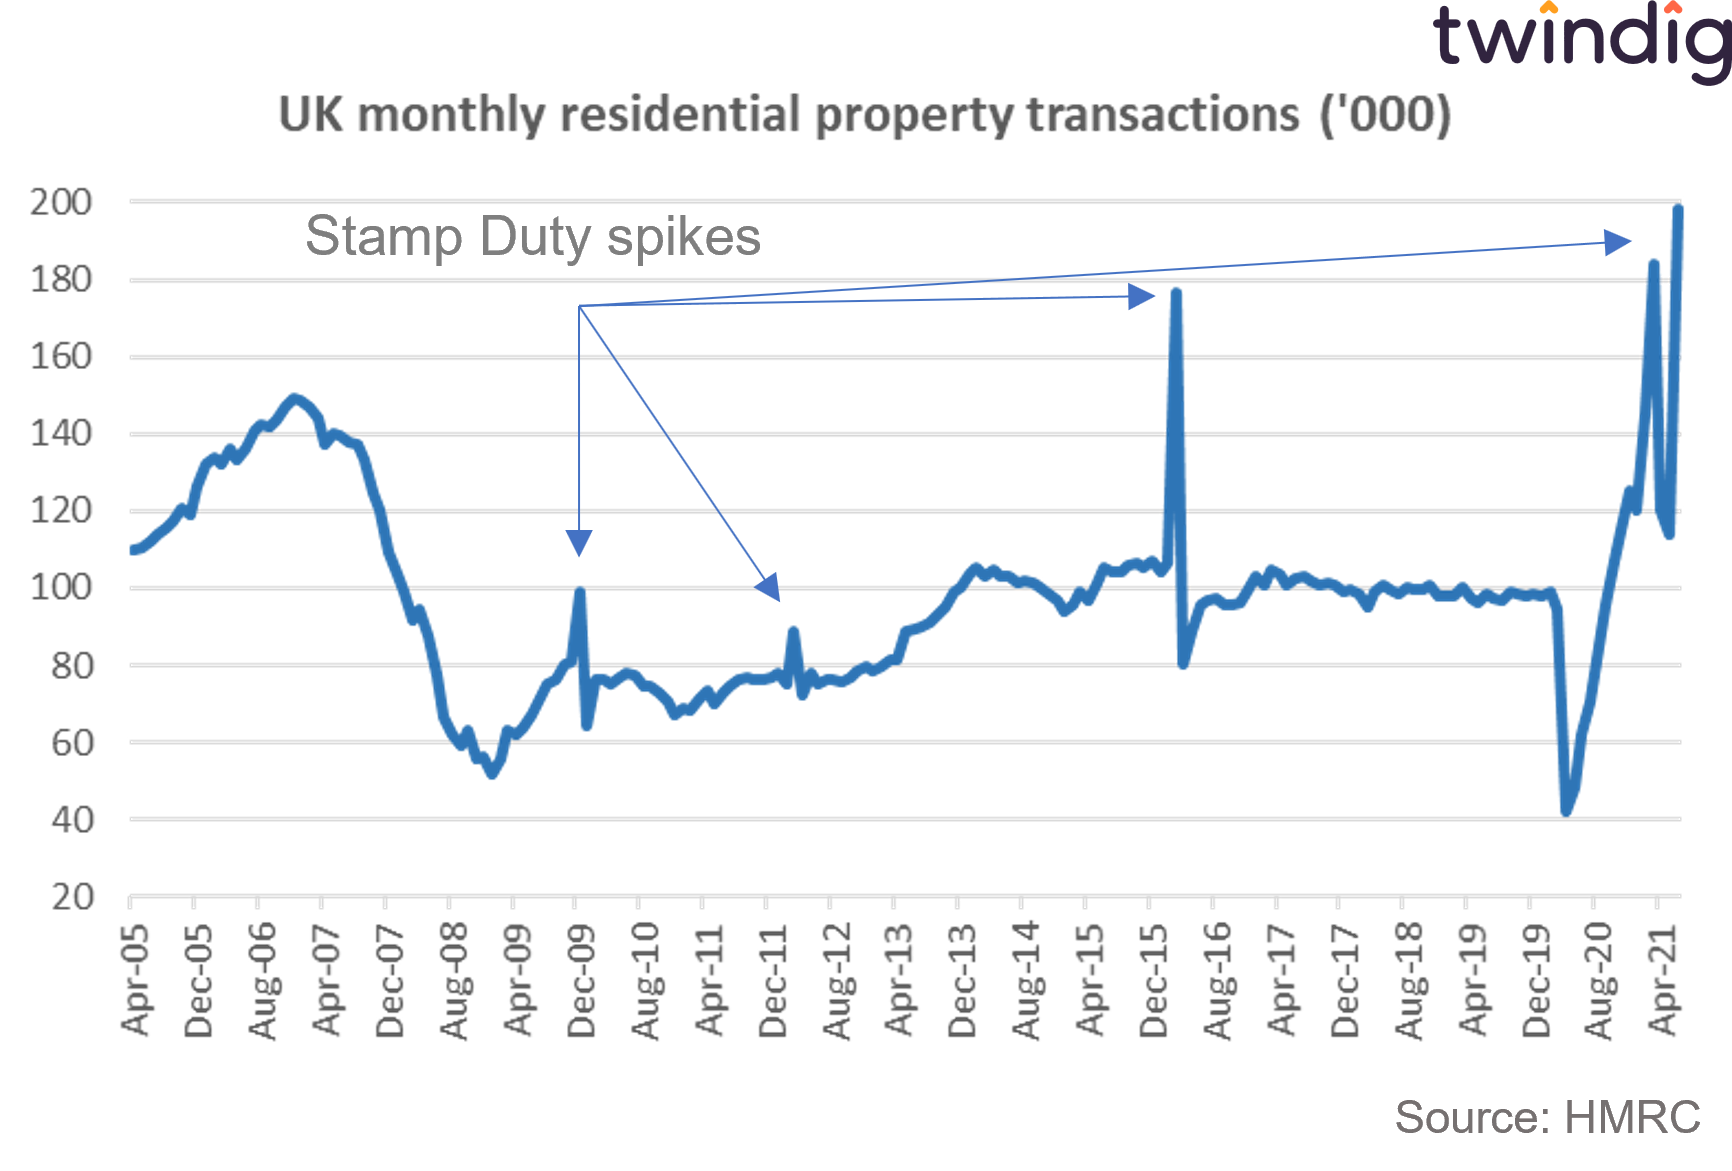 Chart graph showing long run uk housing transactions including stamp duty holiday spikes twindig anthony codling